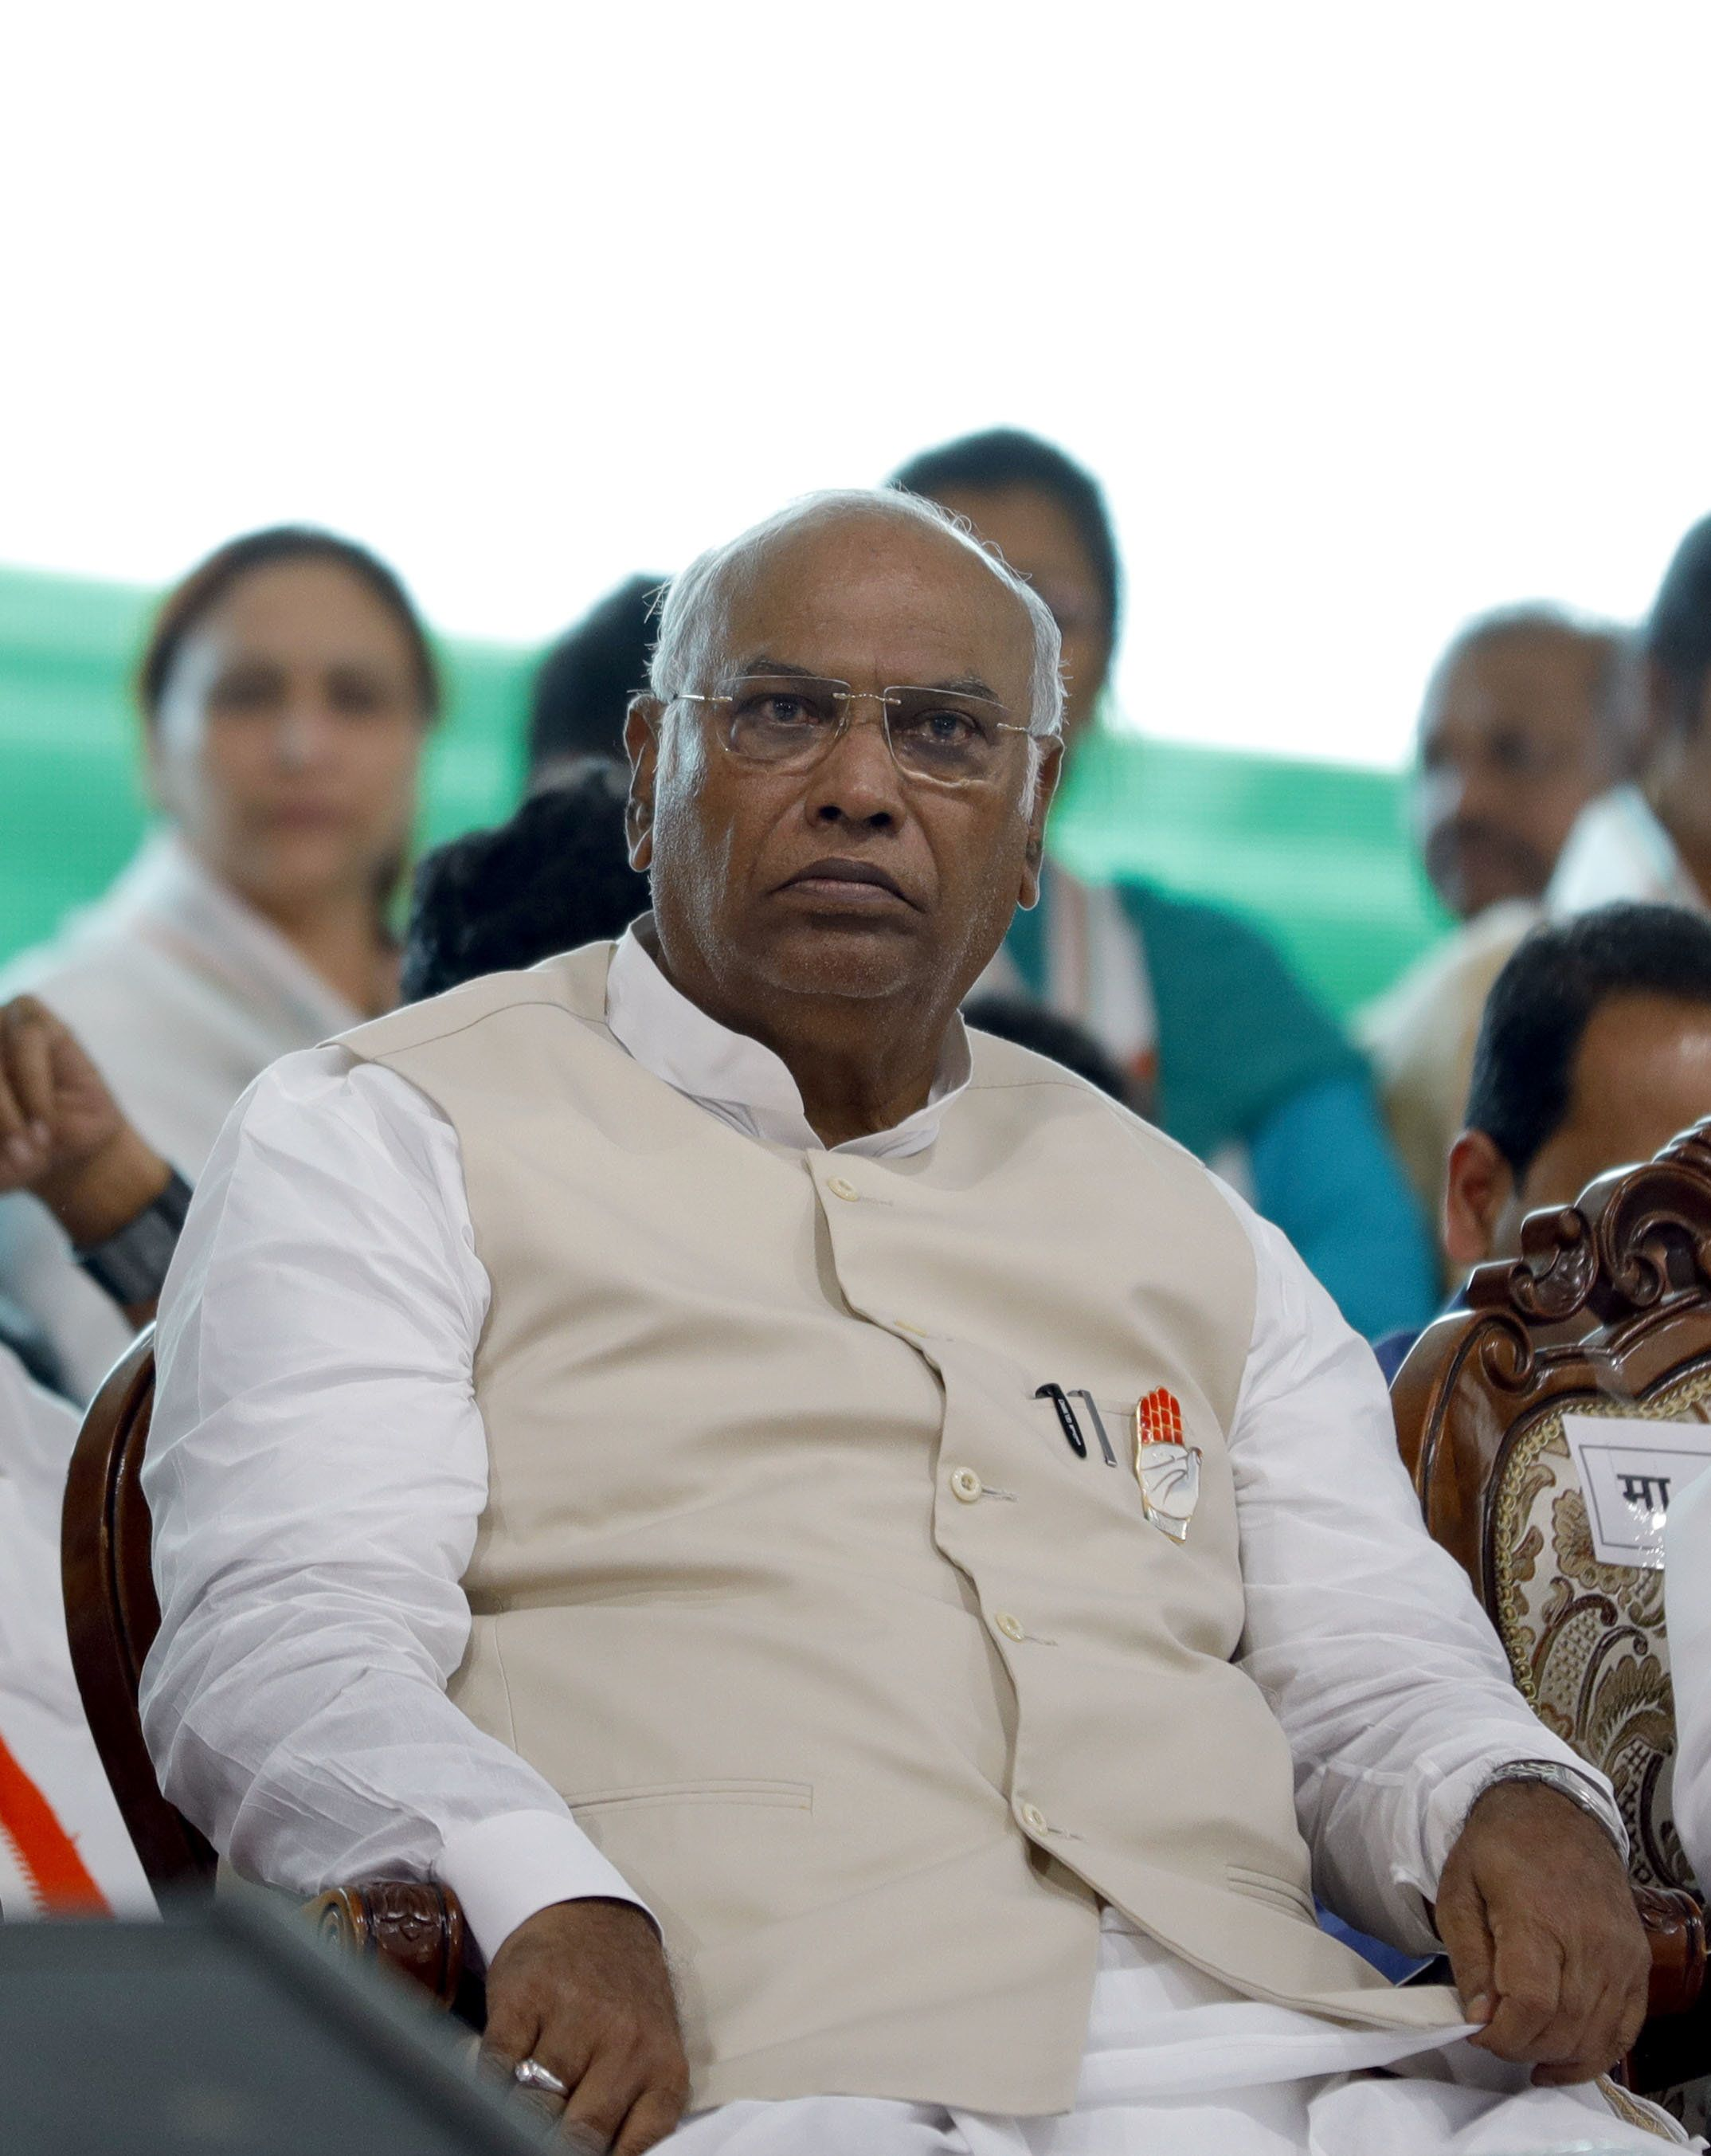 Make CVC Report On Alok Verma, Minutes Of Meeting Public: Kharge To